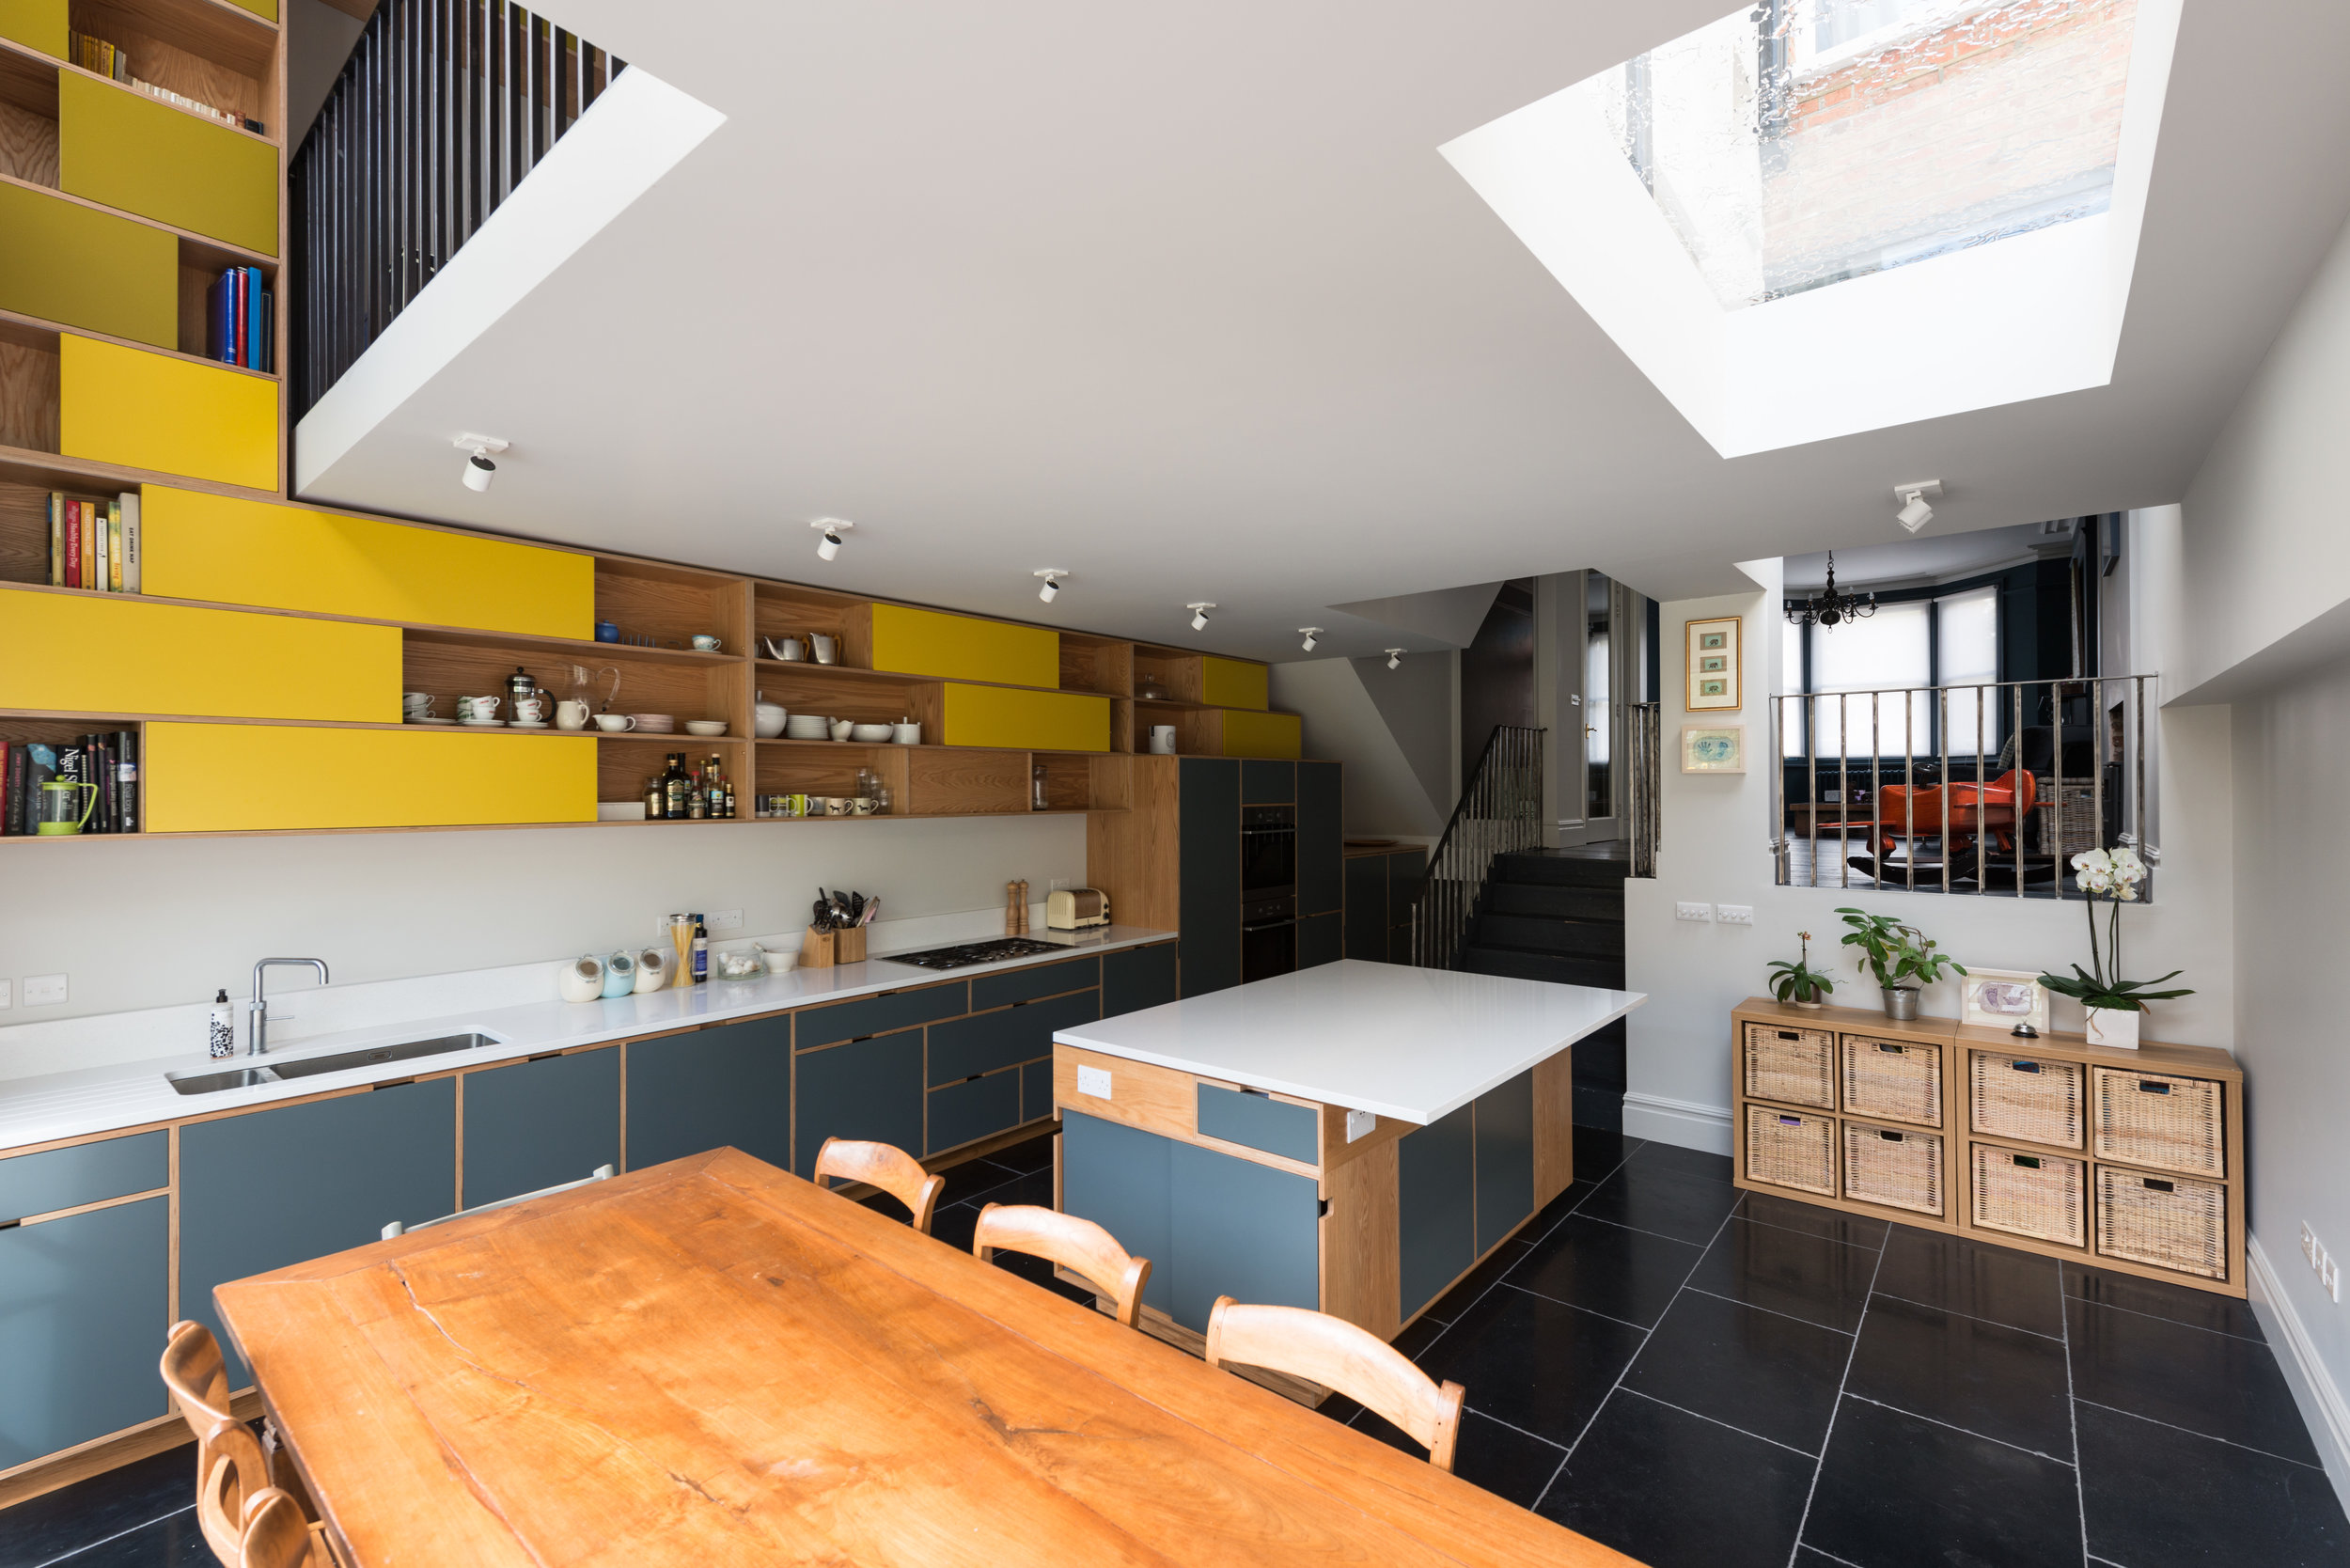 Mackeson Road Kitchen - MW Architects